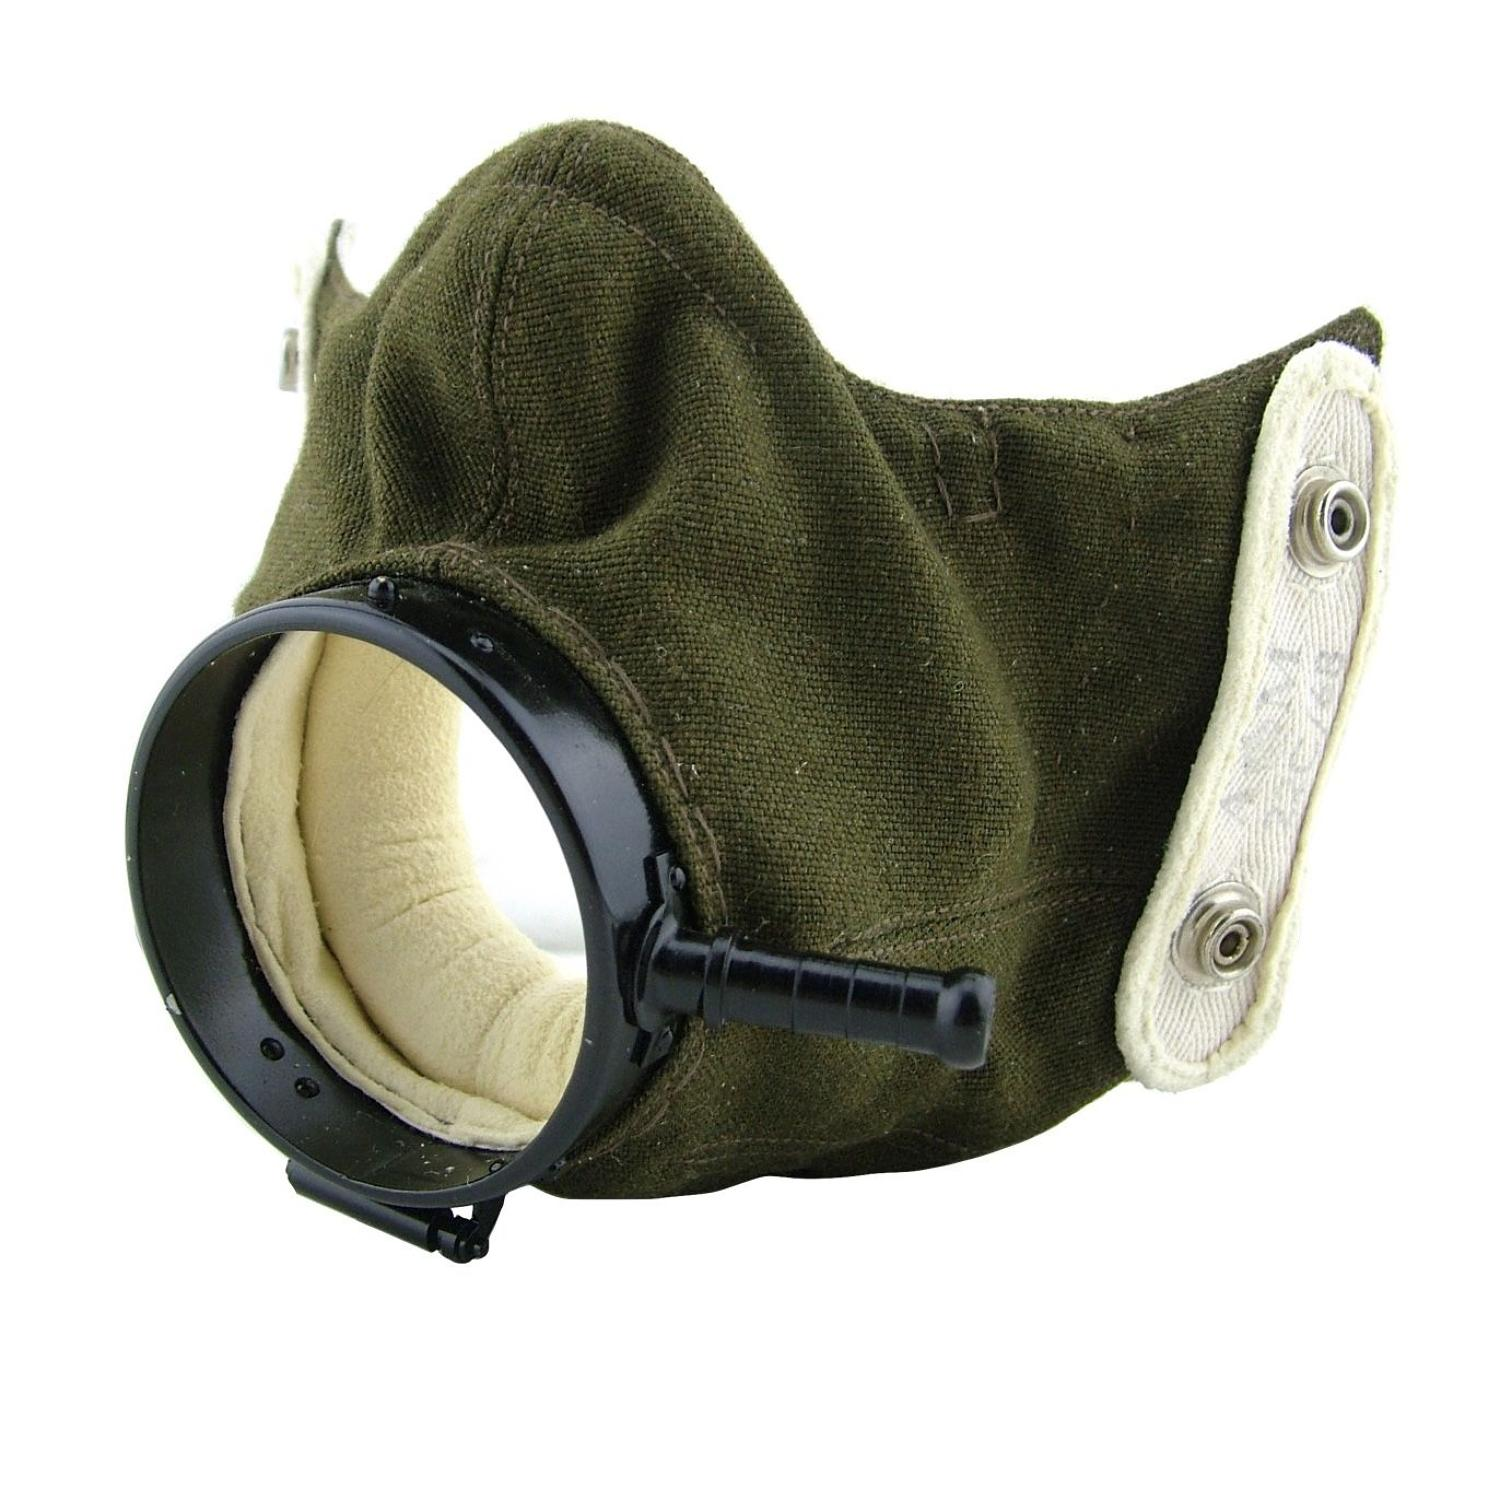 RAF type D oxygen mask - reproduction